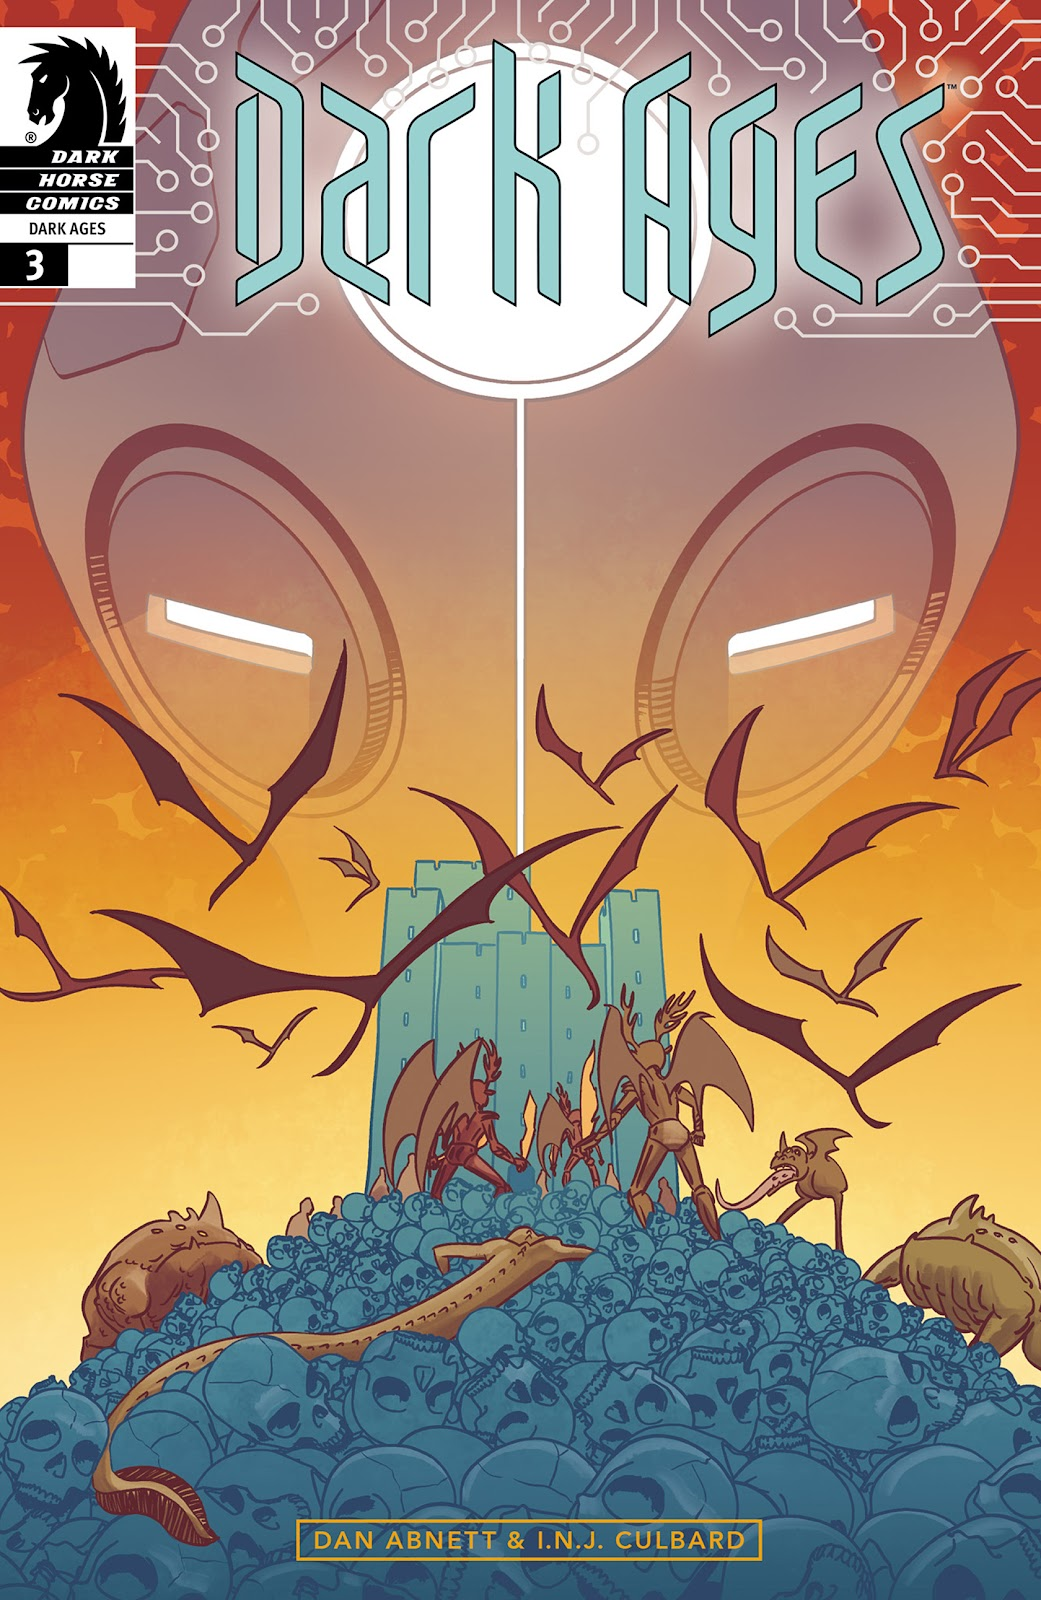 Read online Dark Ages comic -  Issue #3 - 1